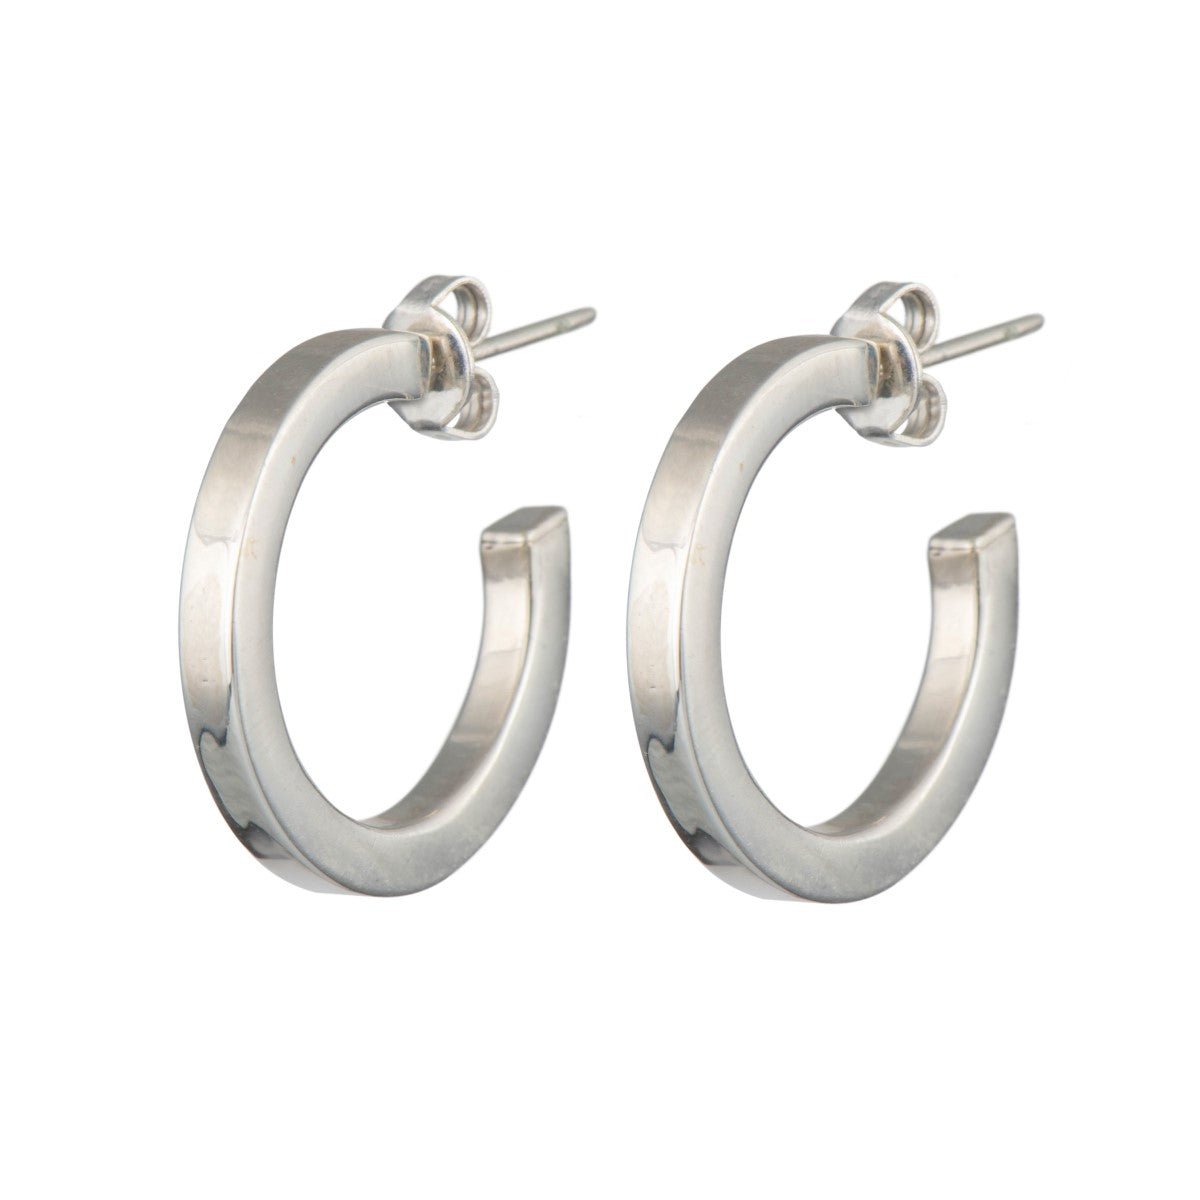 Sterling Silver Hoop Earrings with a Flat Square Edge